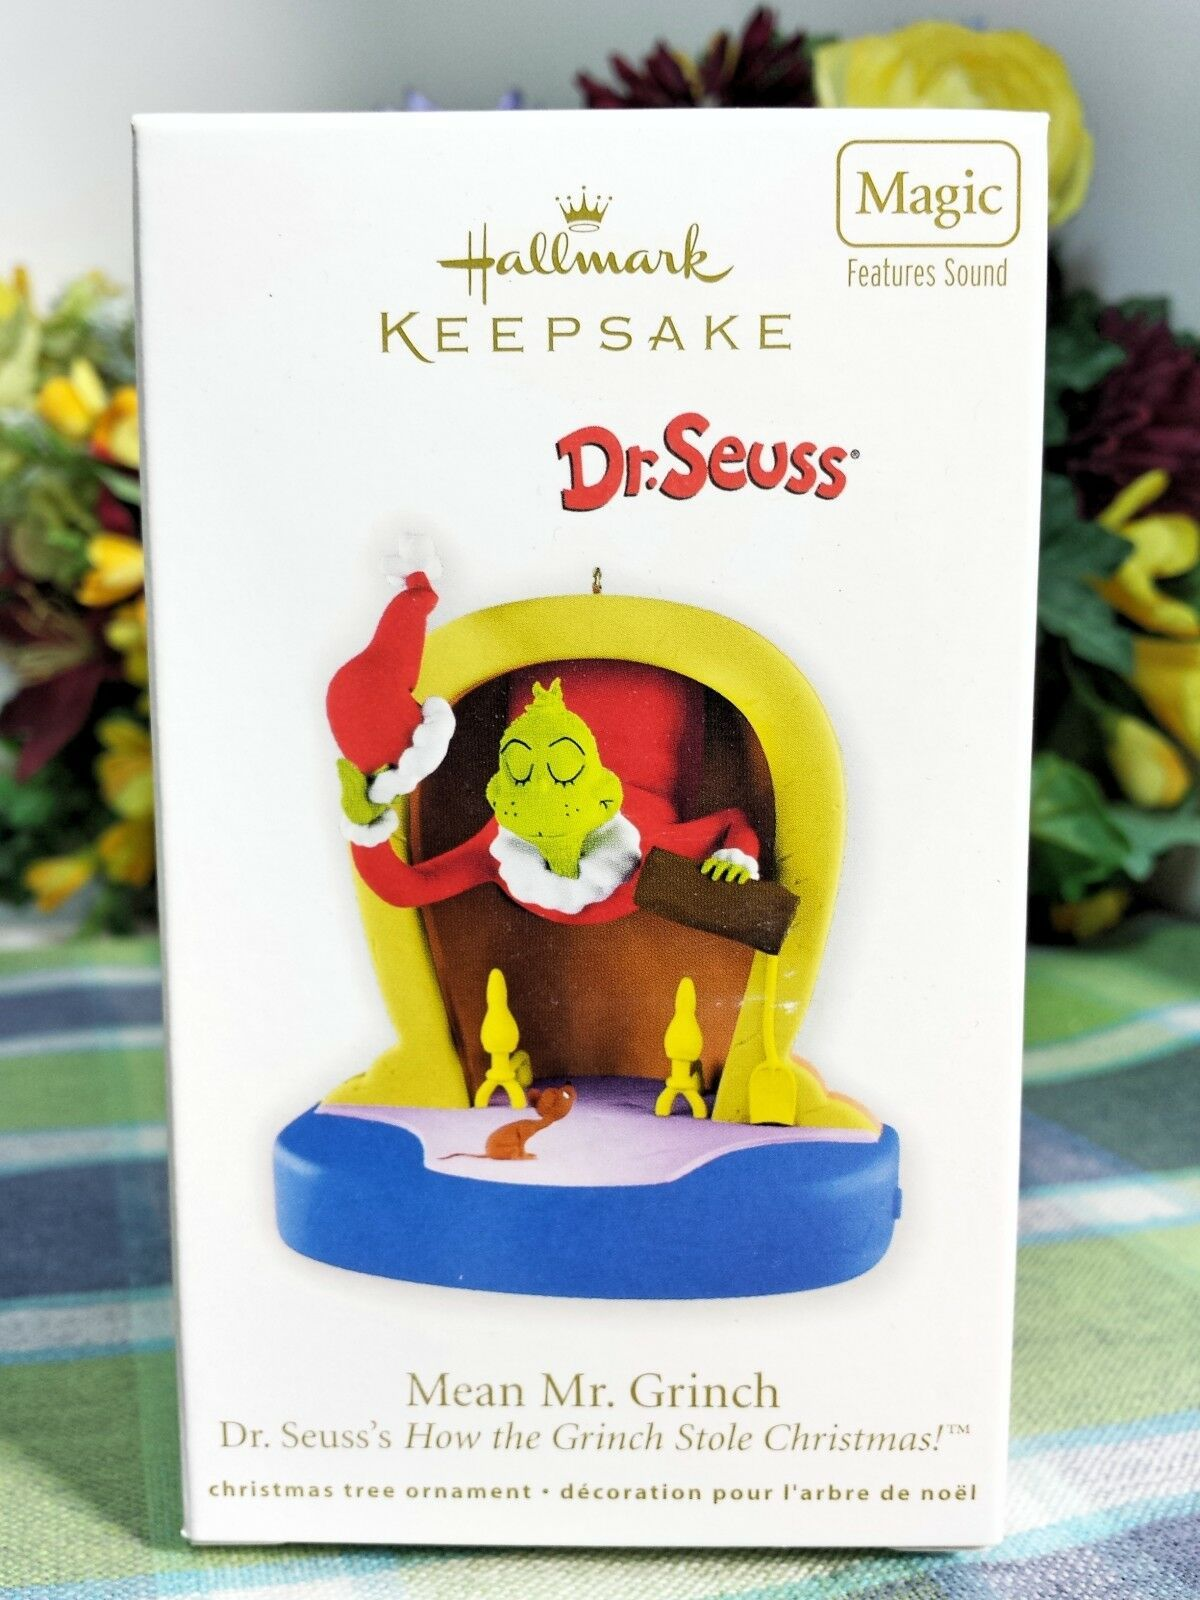 Primary image for Hallmark Grinch Mean Mr Grinch 2011 ornament